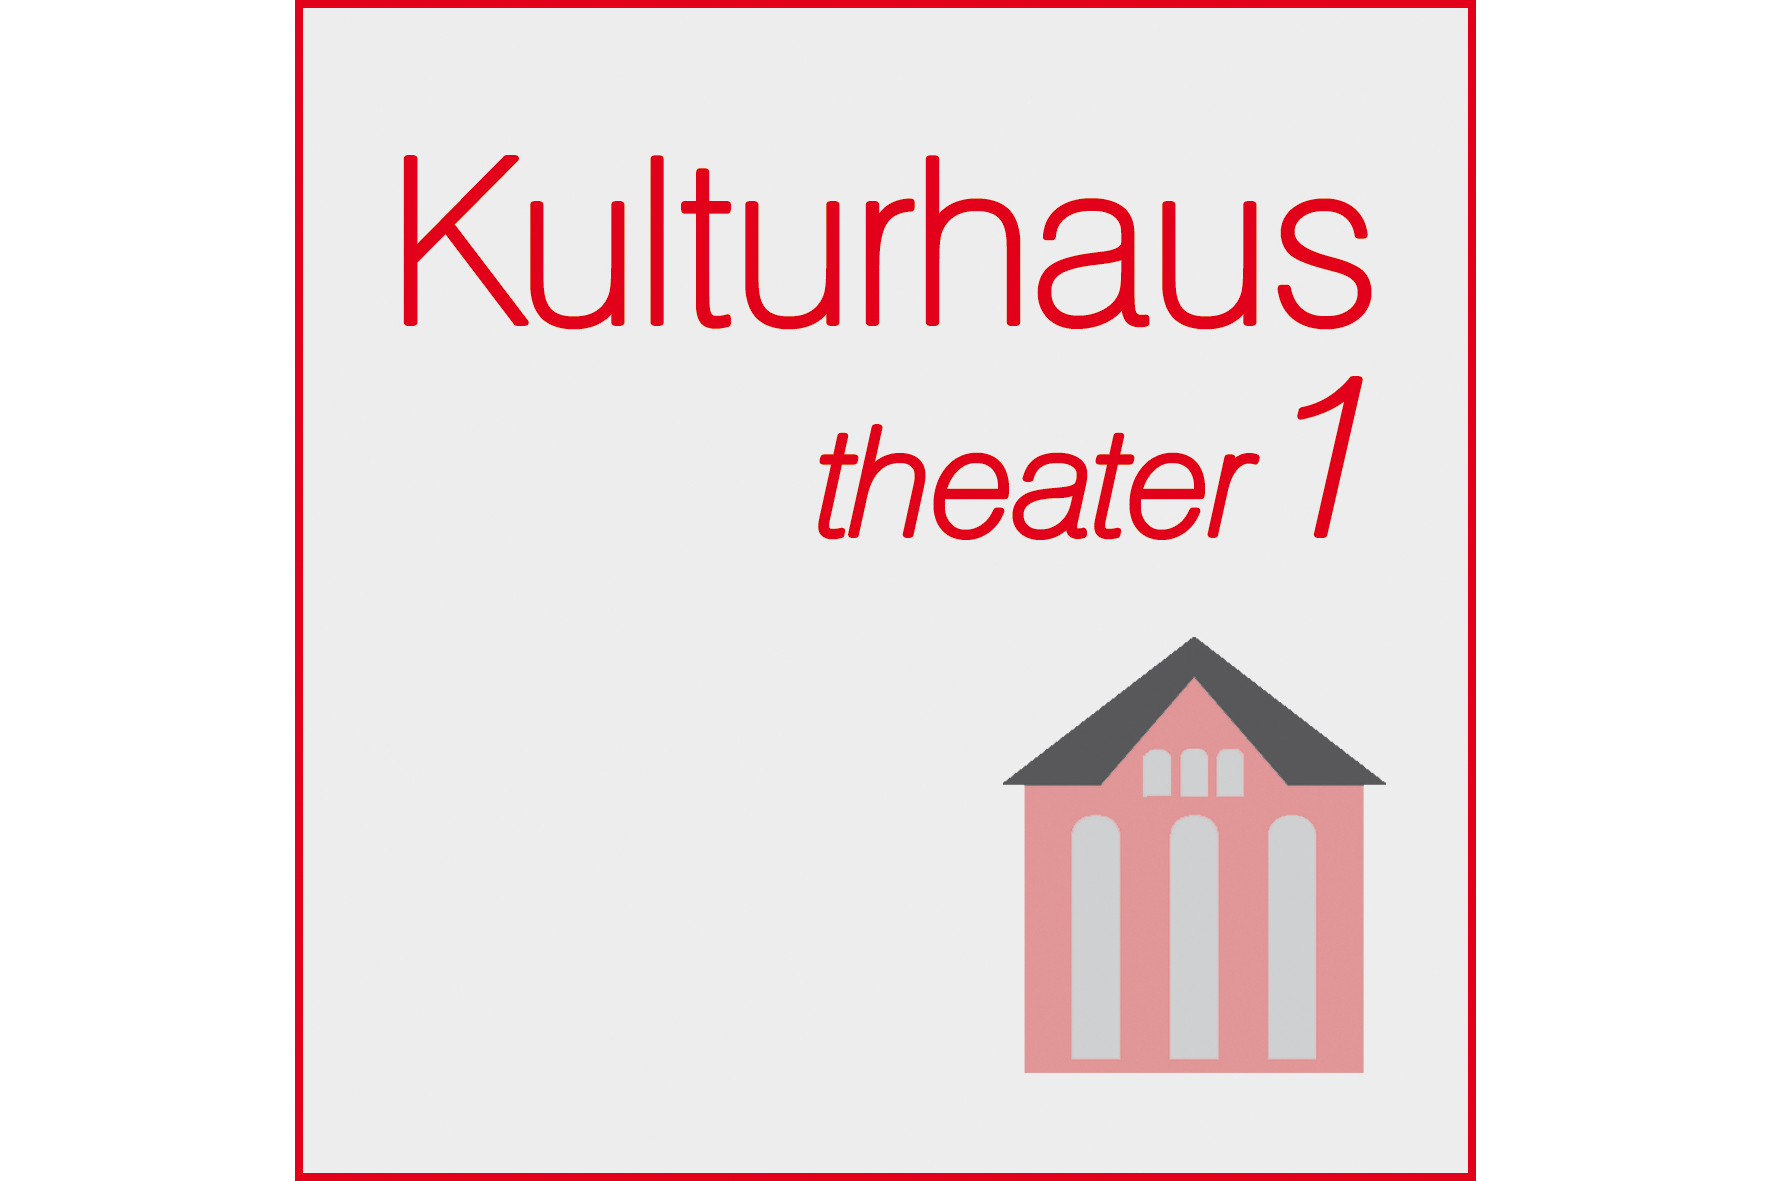 Kulturhaus theater 1